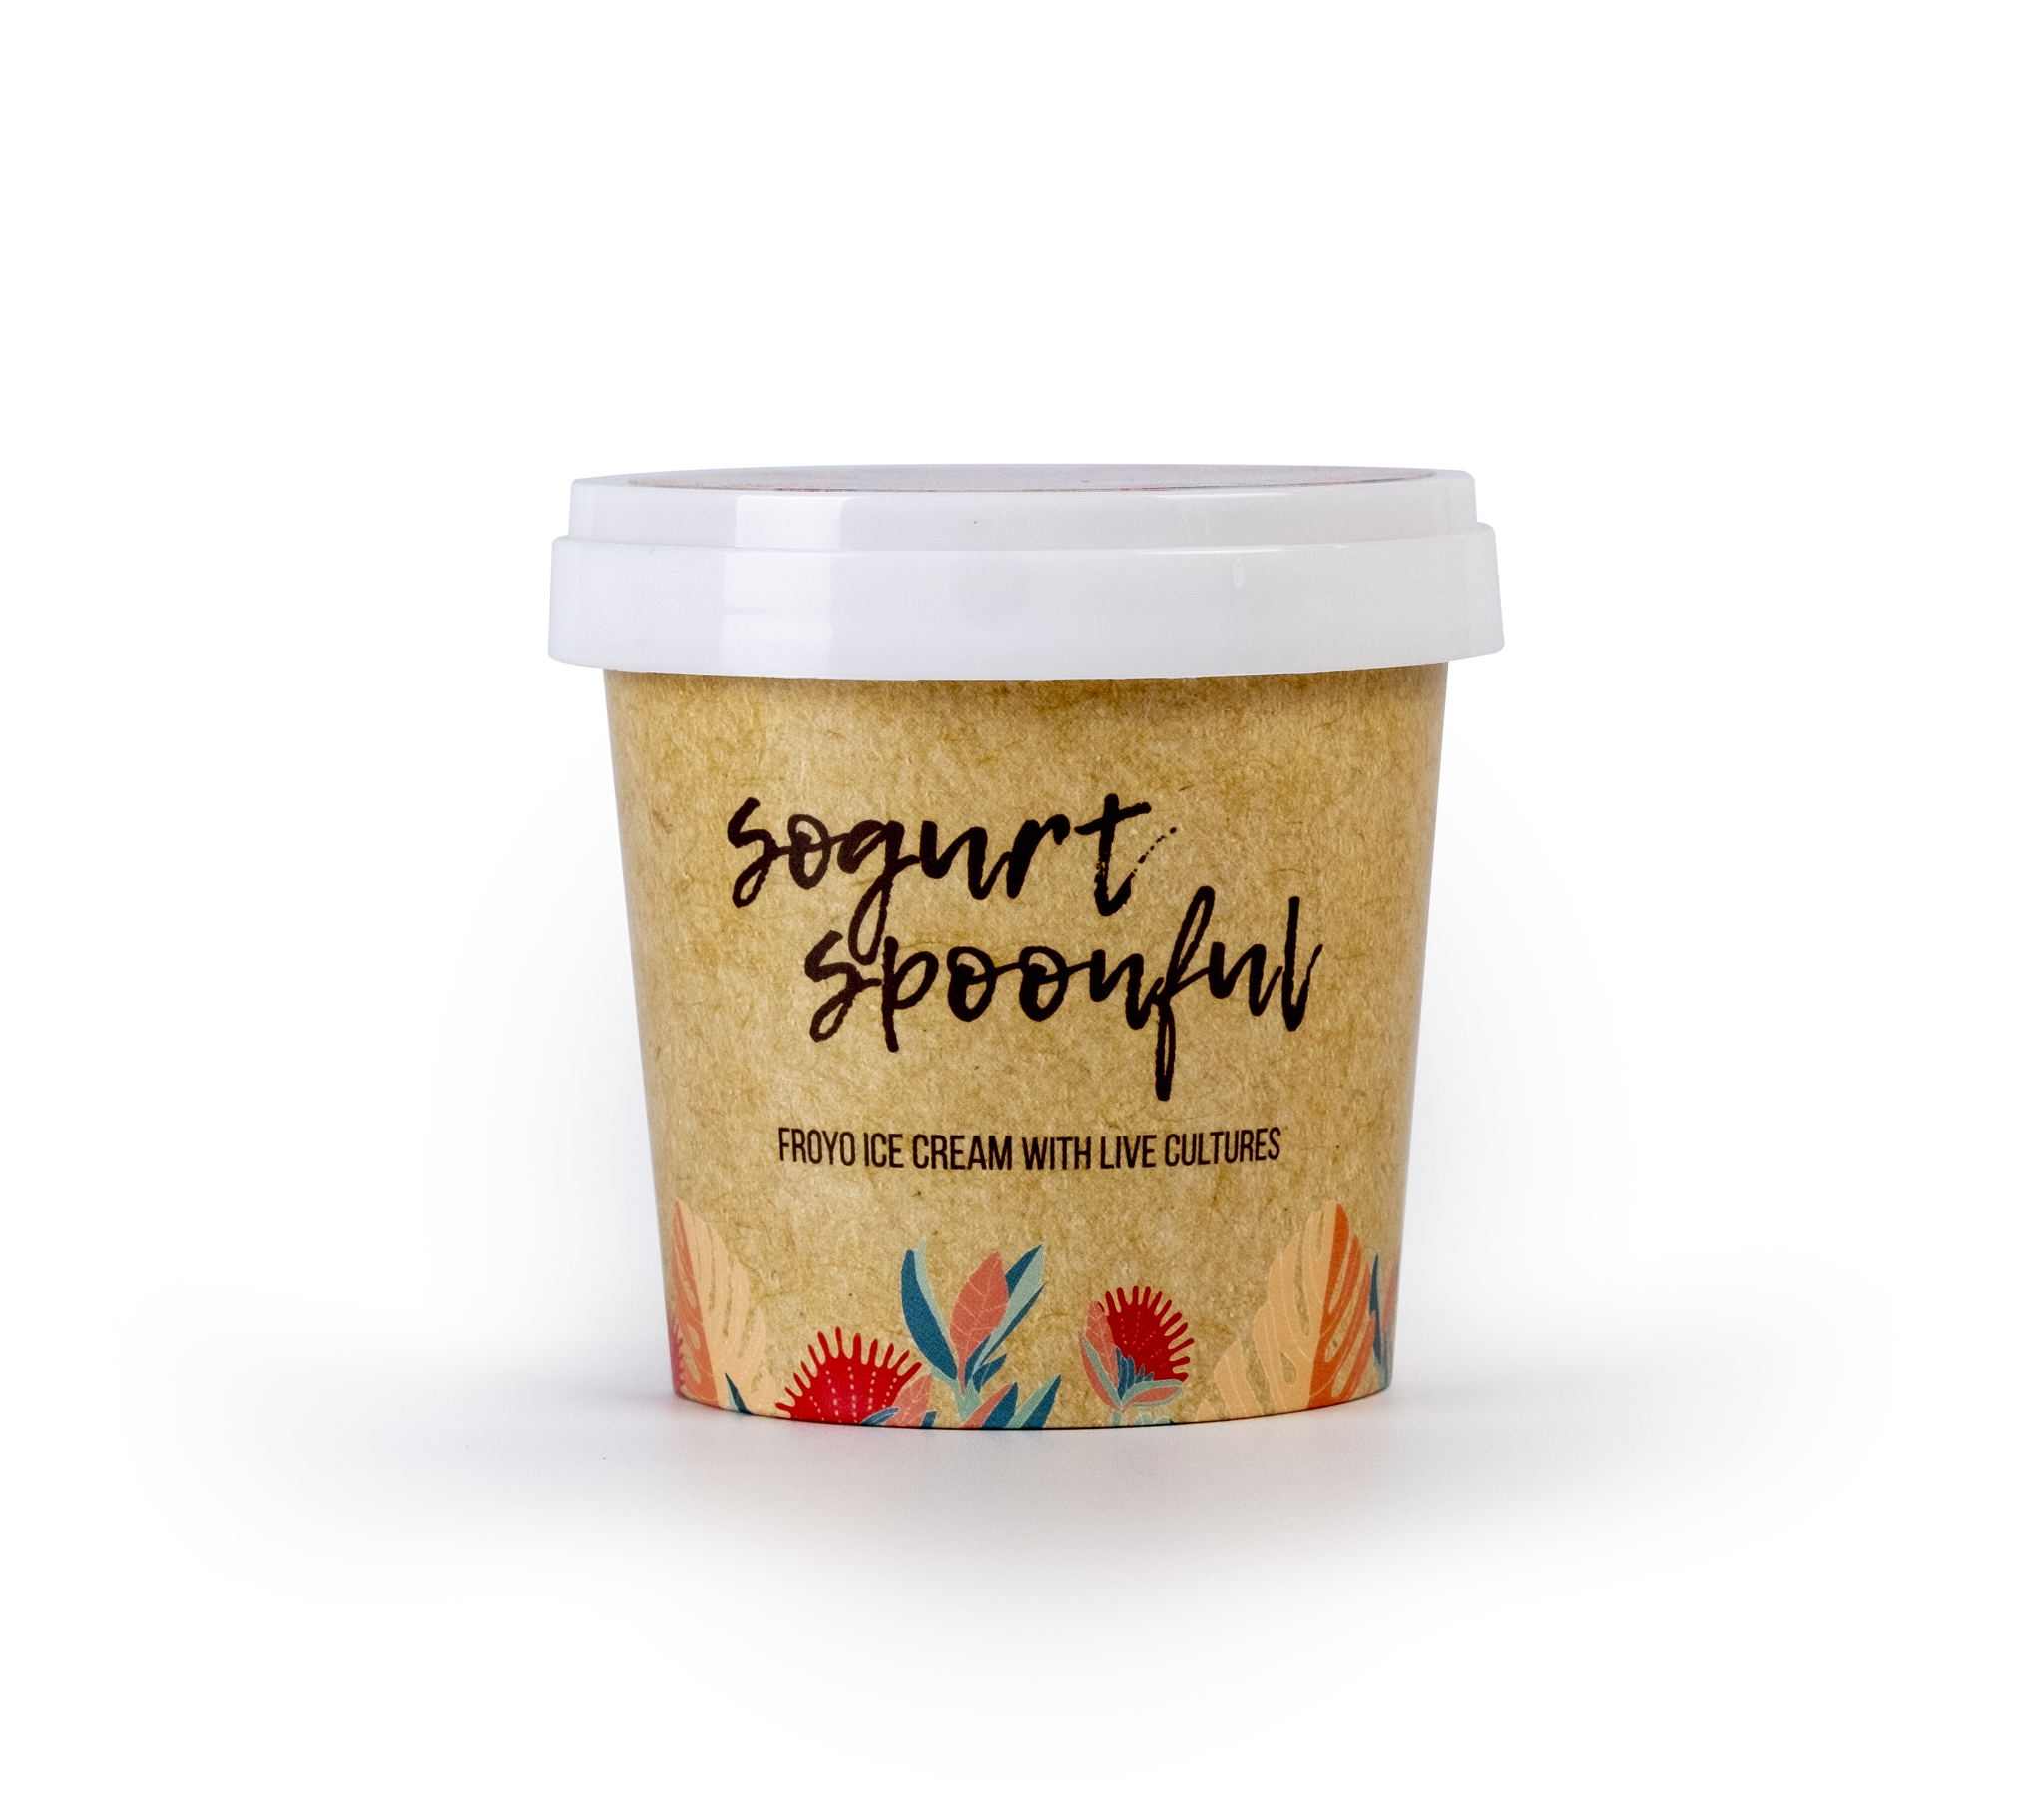 Sogurt Spoonful